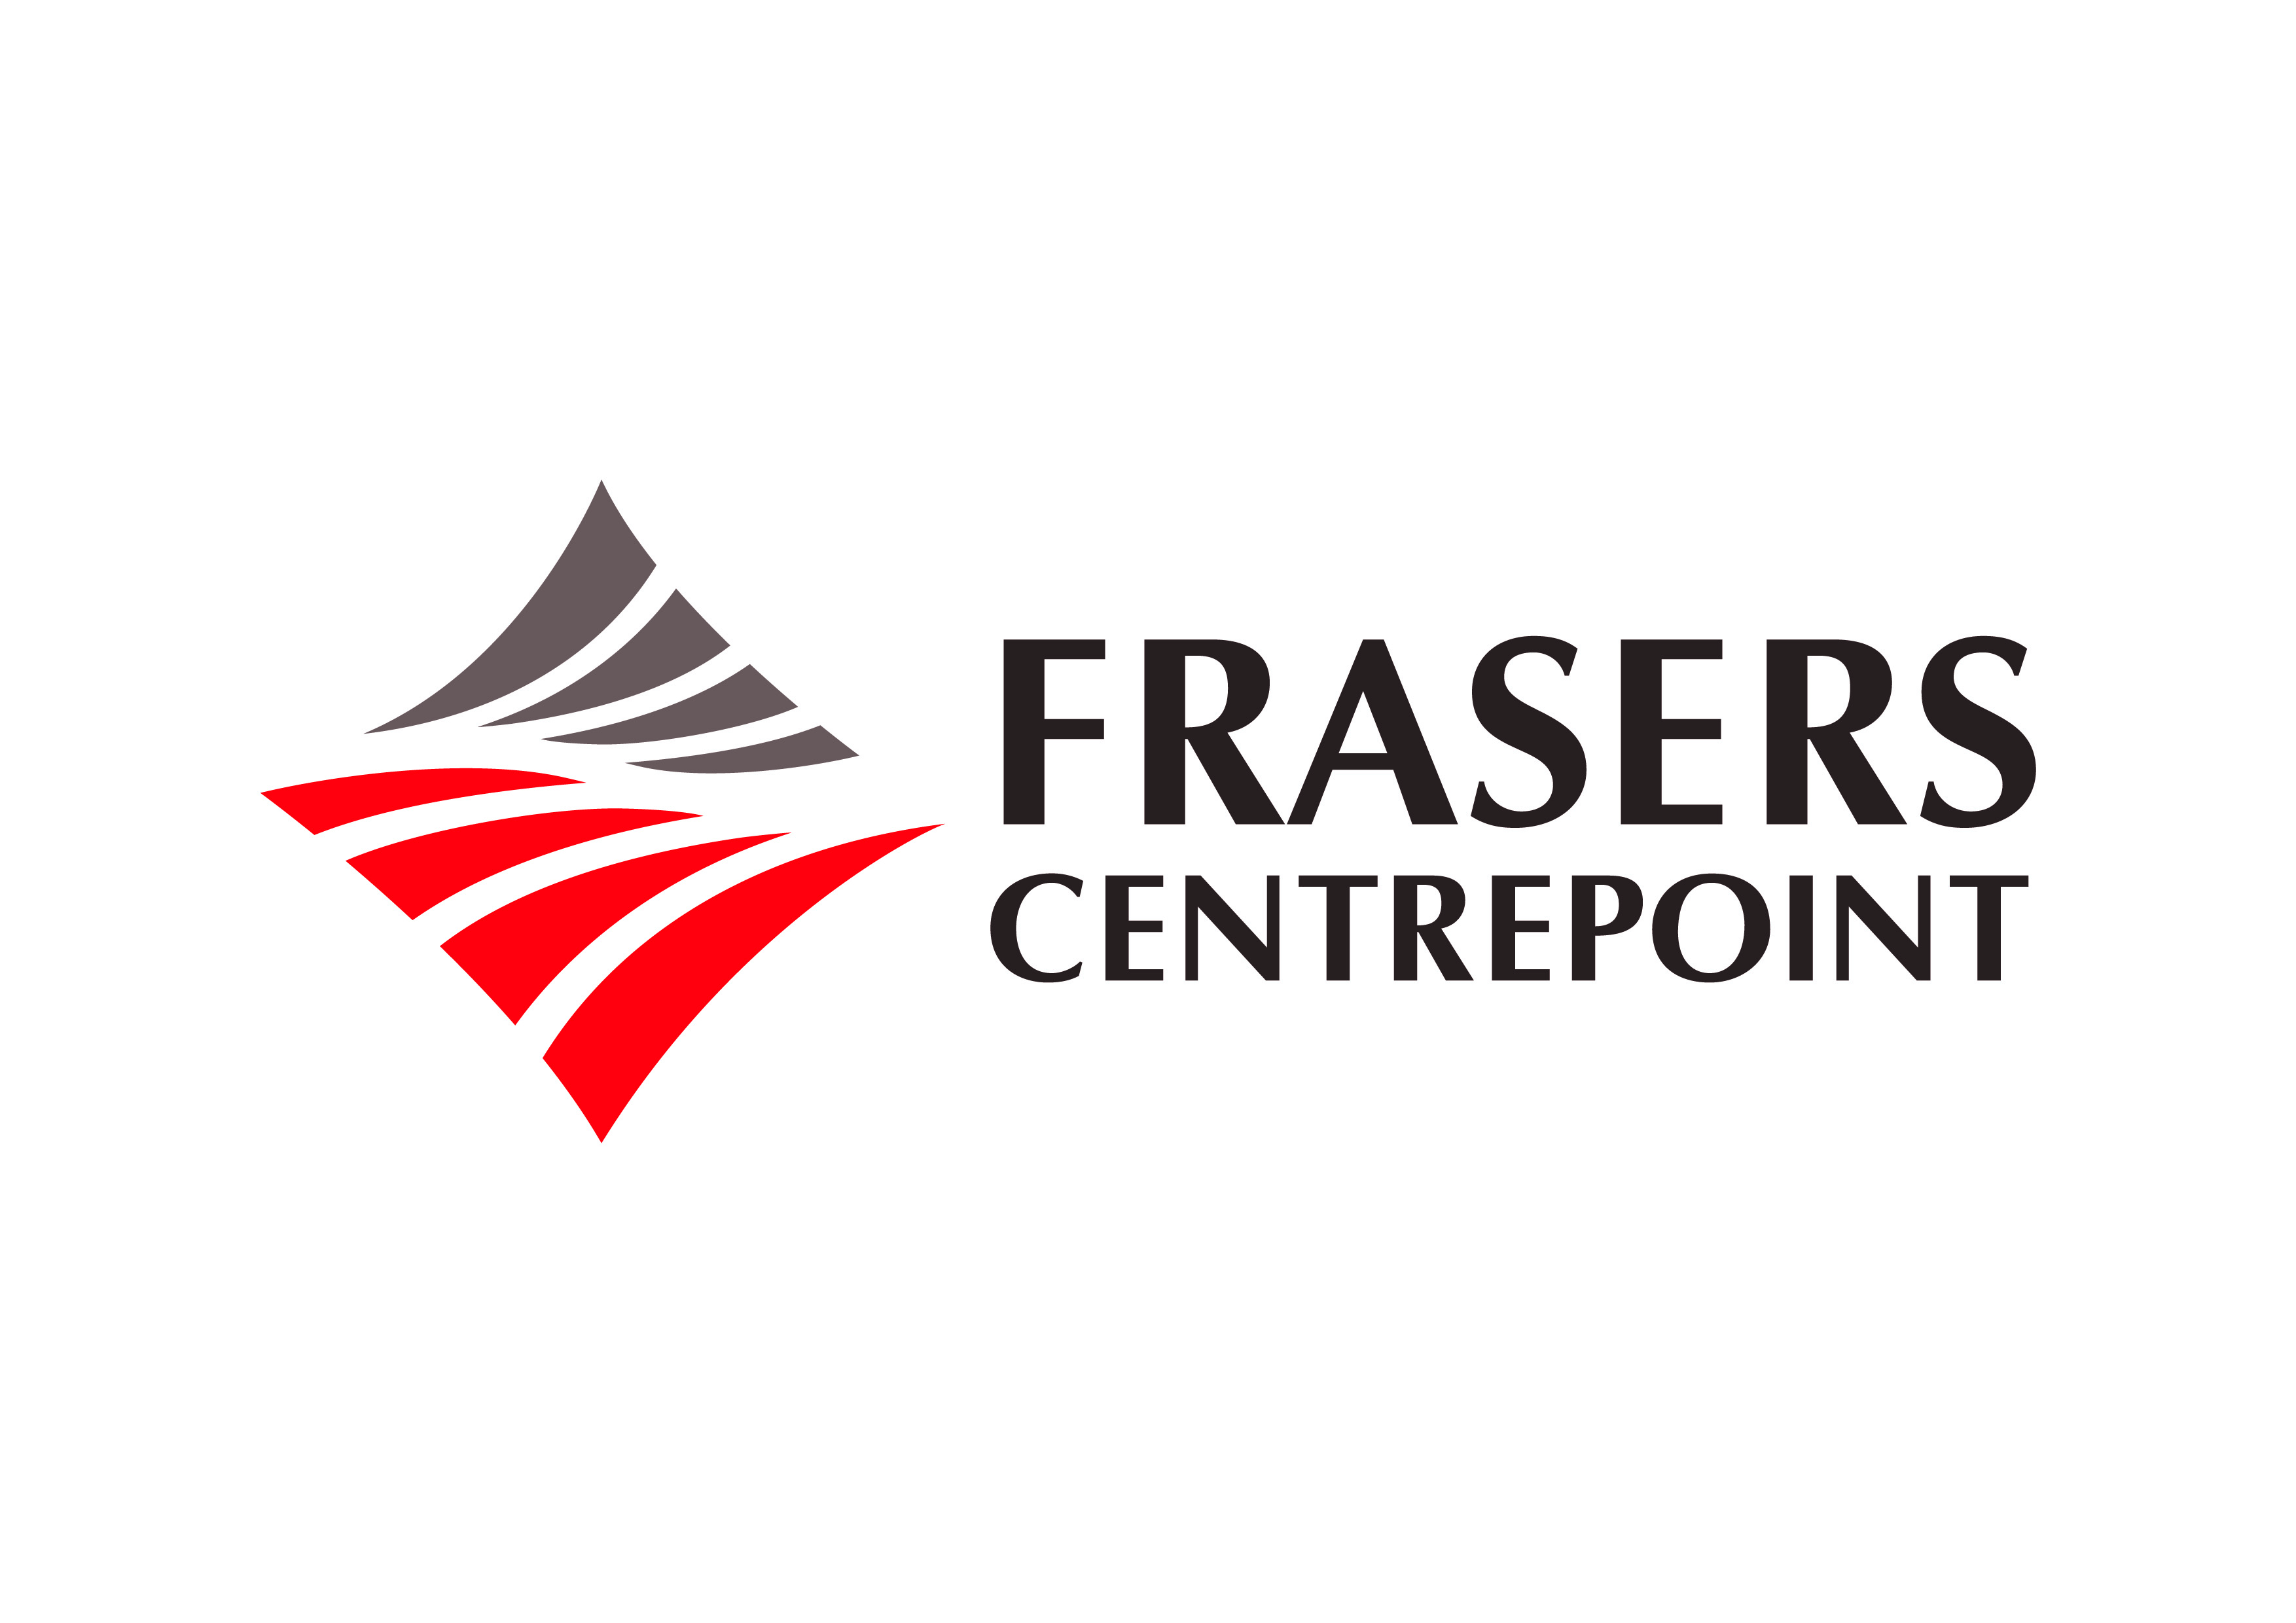 Q2 Thảo Điền_Frasers Centrepoint